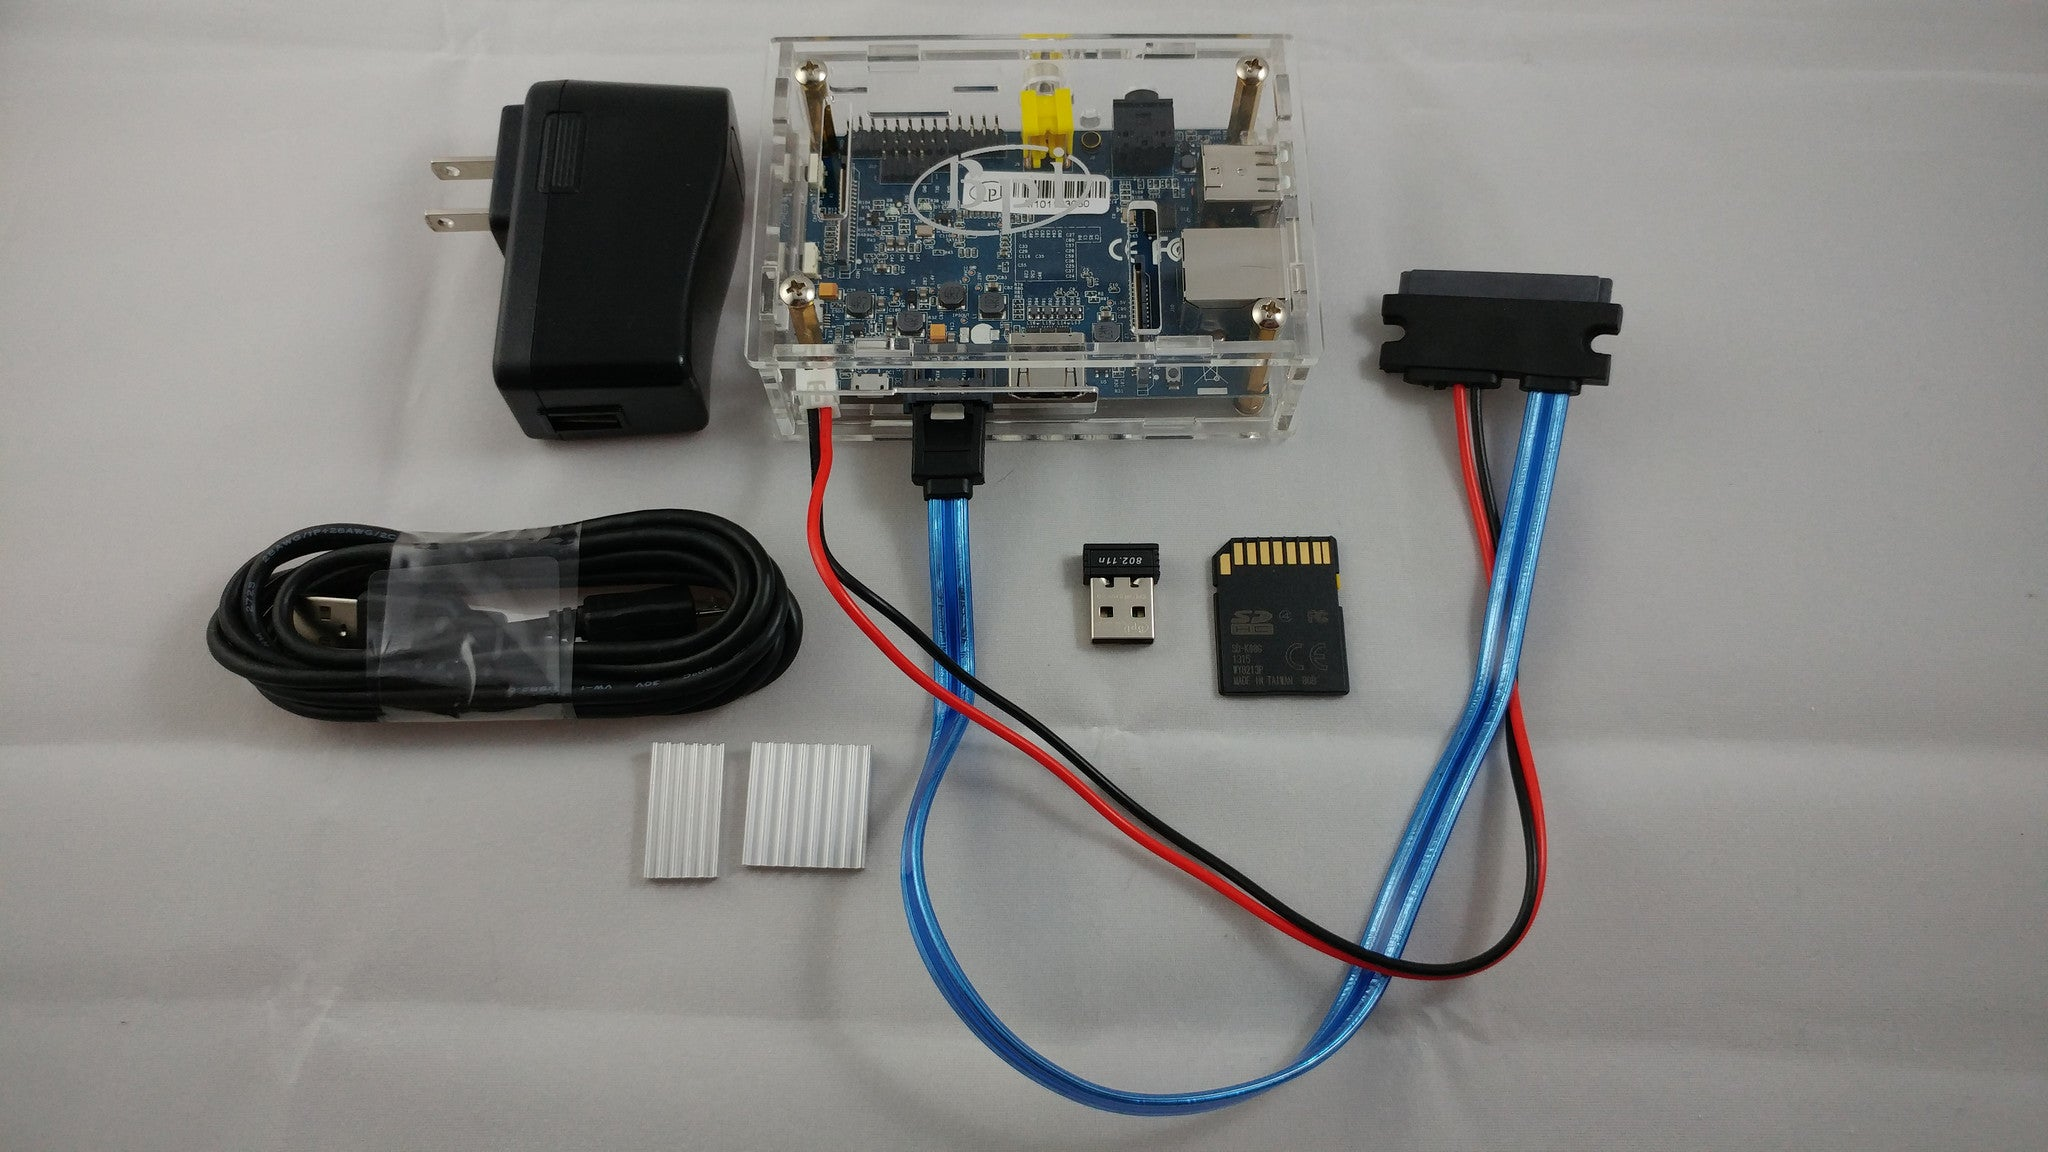 Banana Pi TinyOne Model G2 -Complete System with Linux disk - Assembled and tested (BPI-M1 board)